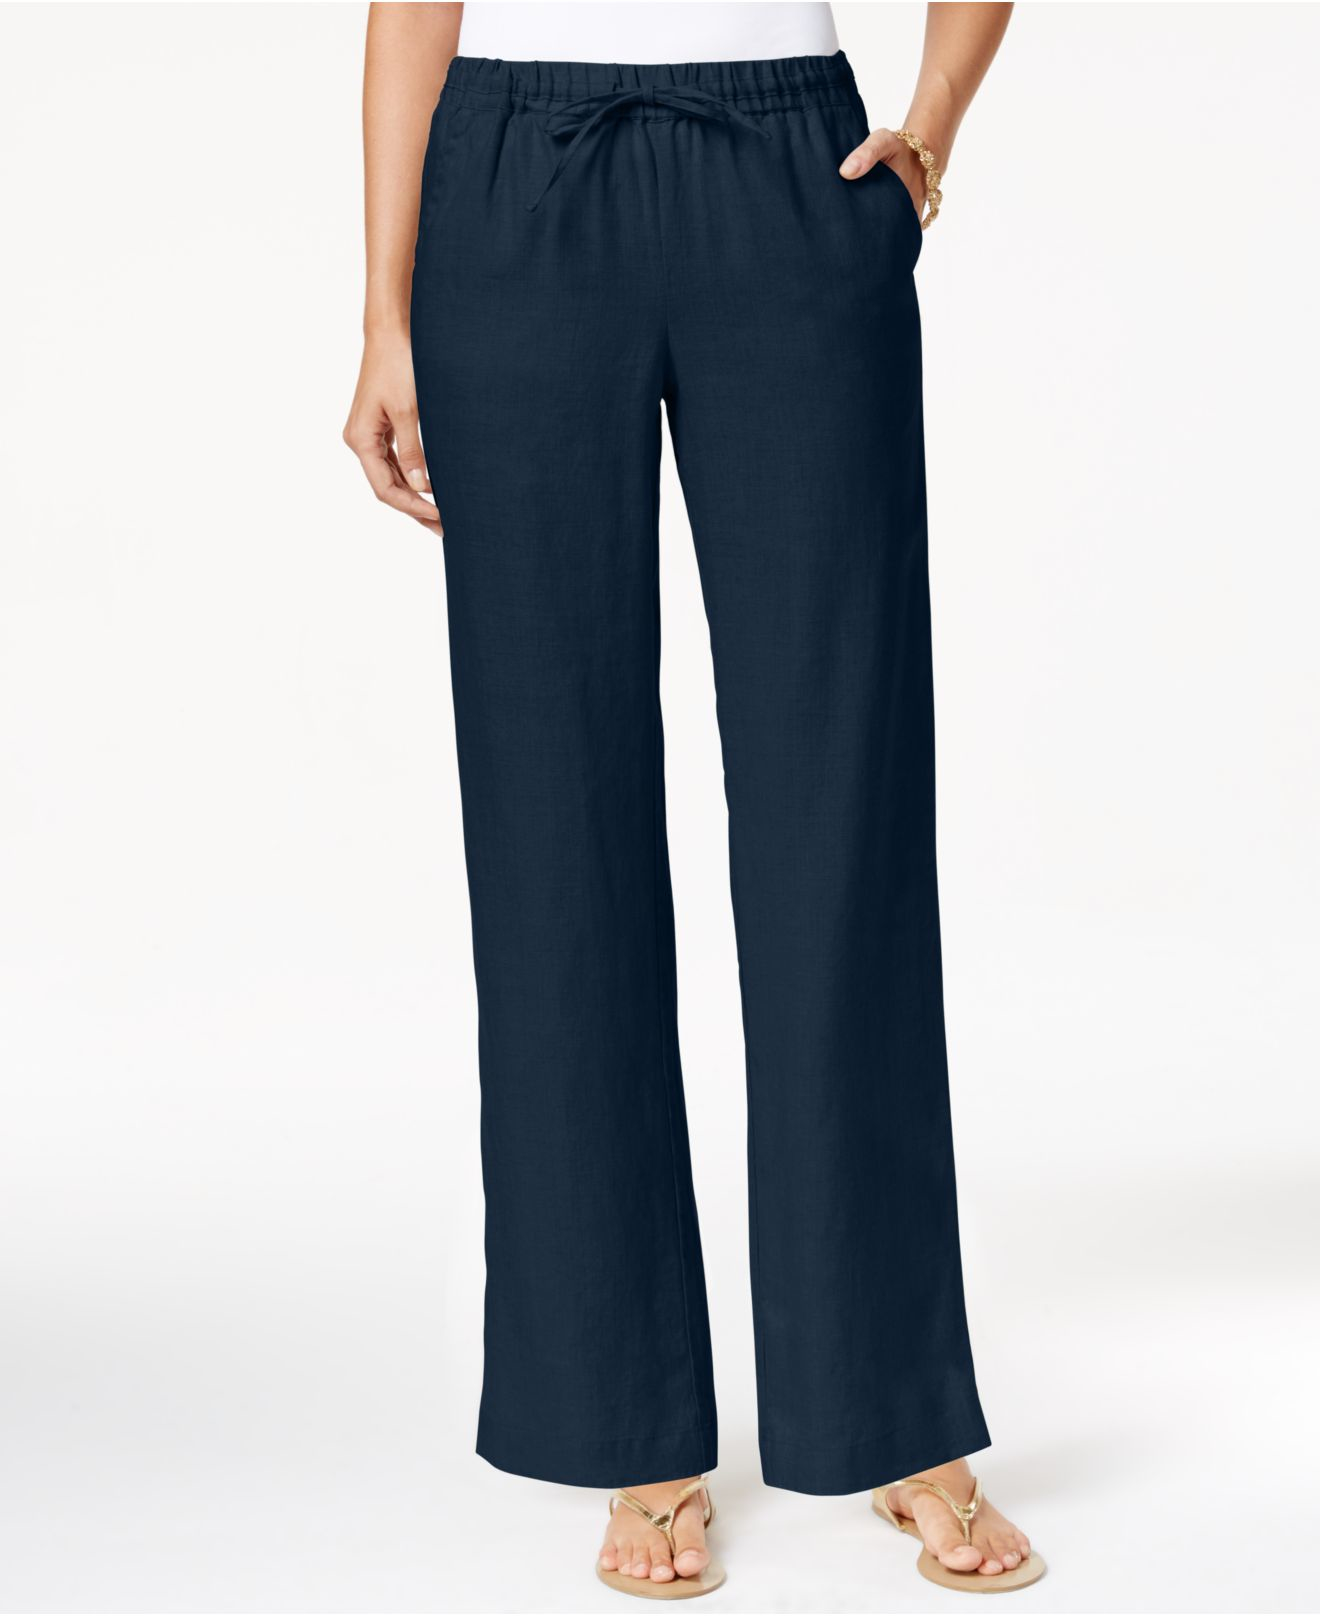 Charter club Linen Pull-on Drawstring Pants, Only At Macy ...